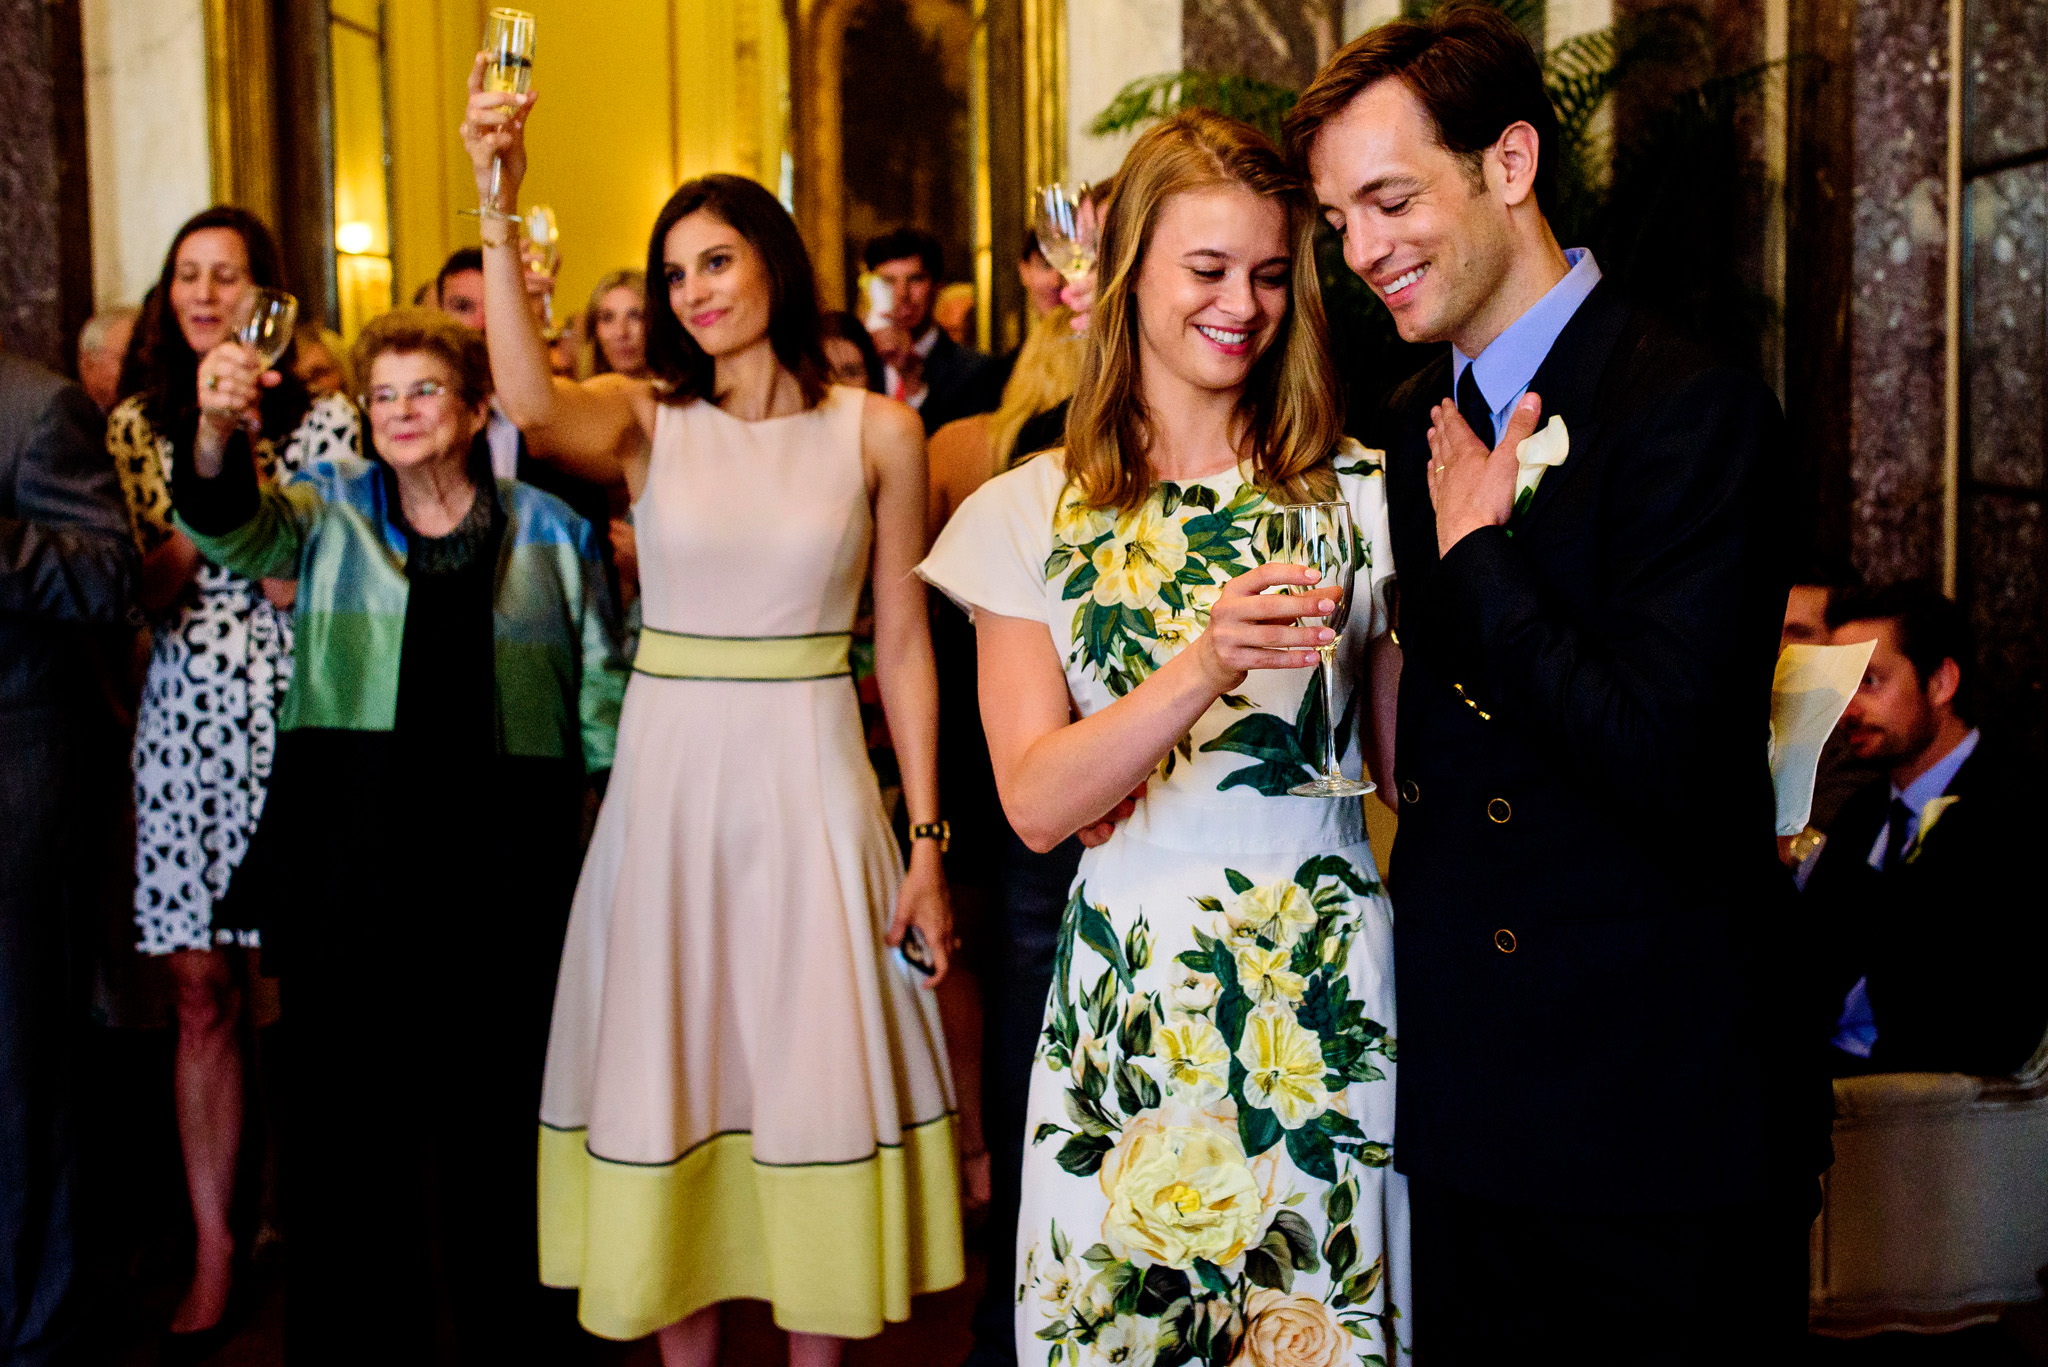 A toast to the bridal couple at James Burden Mansion in New York